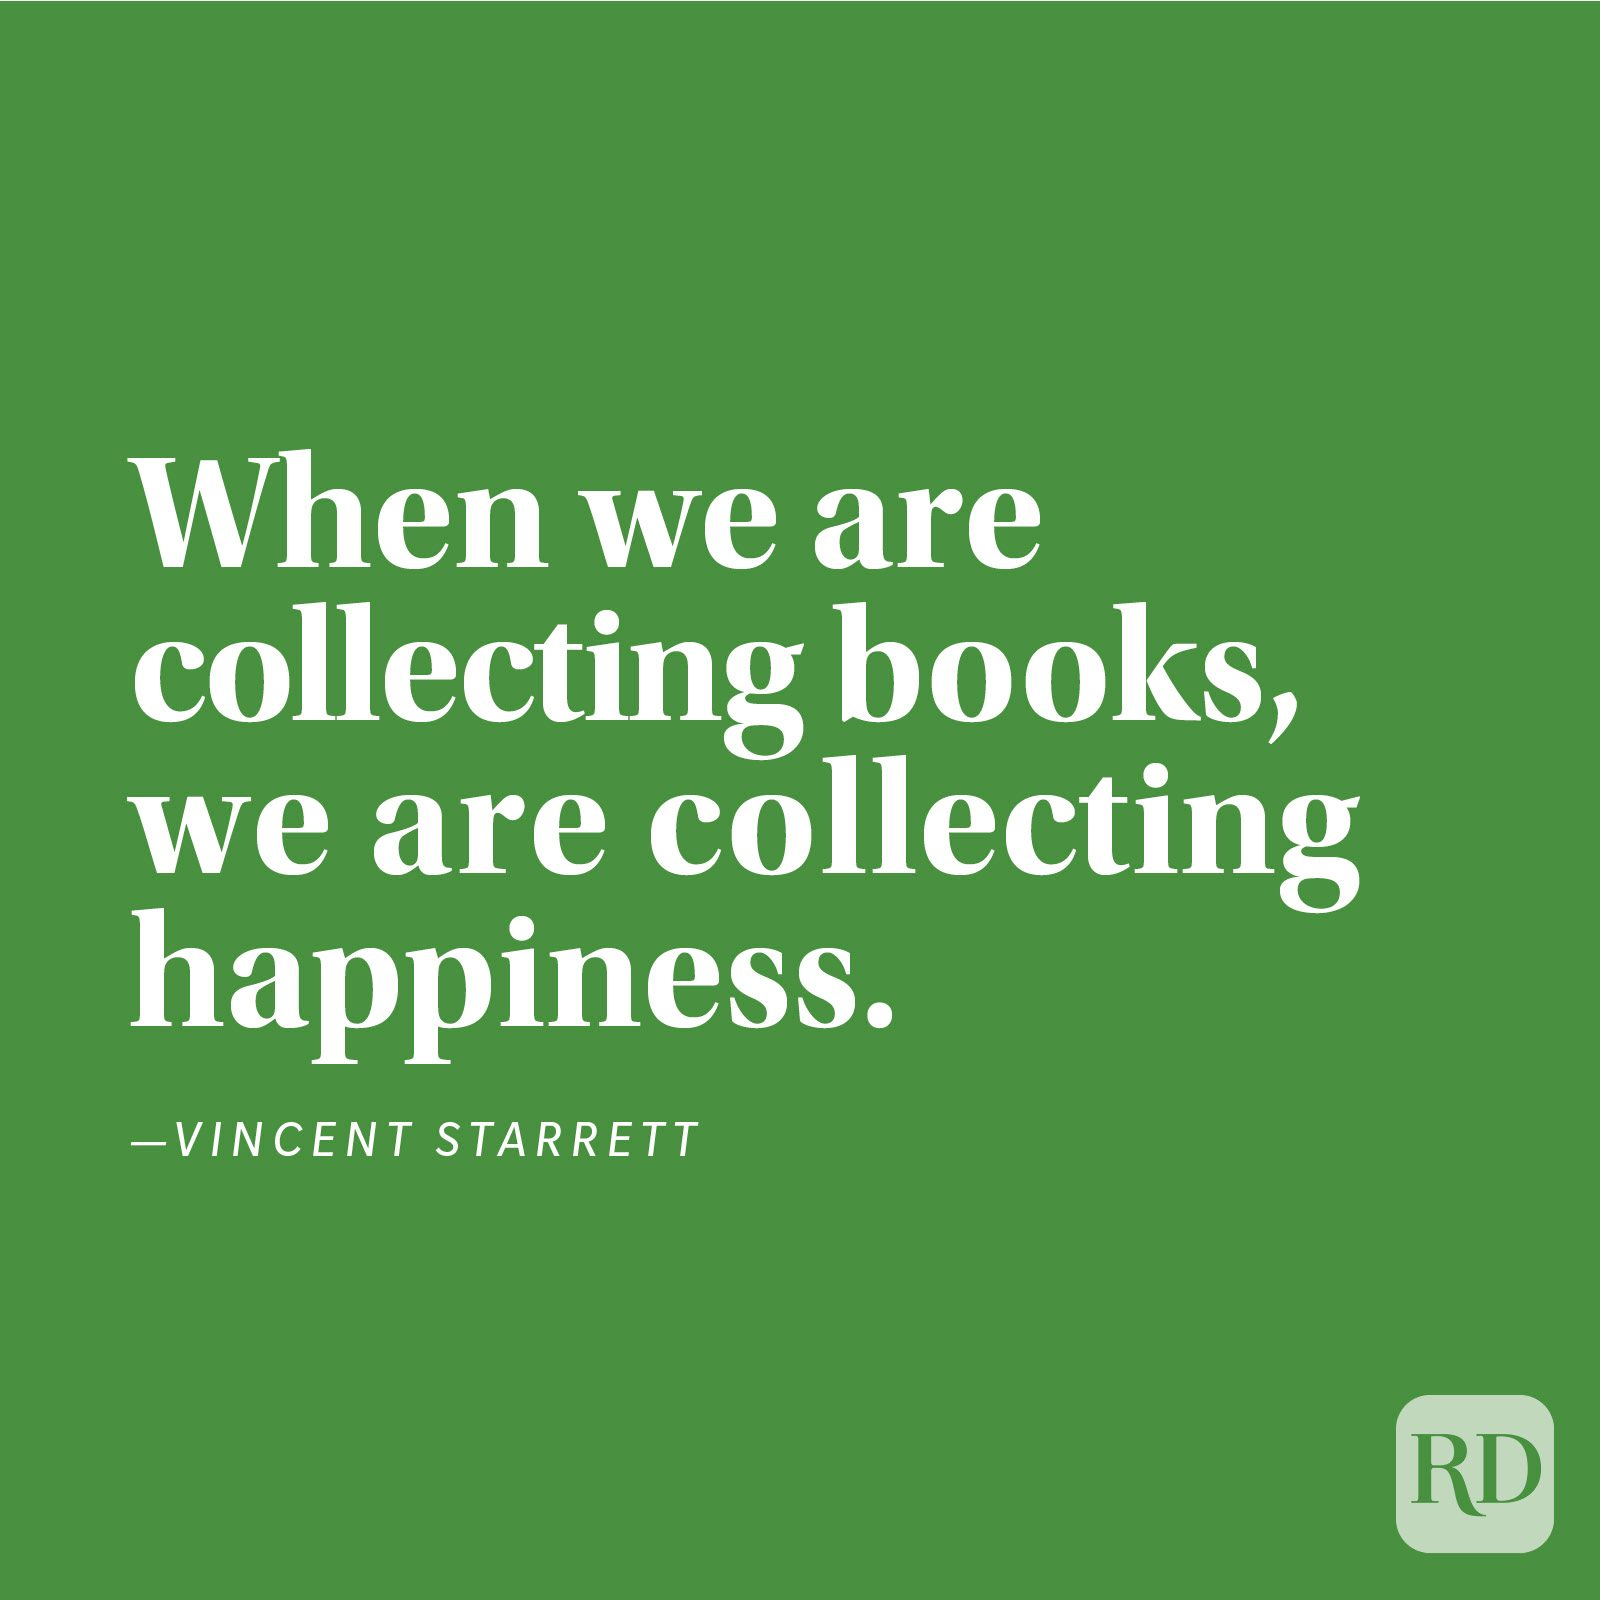 """When we are collecting books, we are collecting happiness."" —Vincent Starrett"